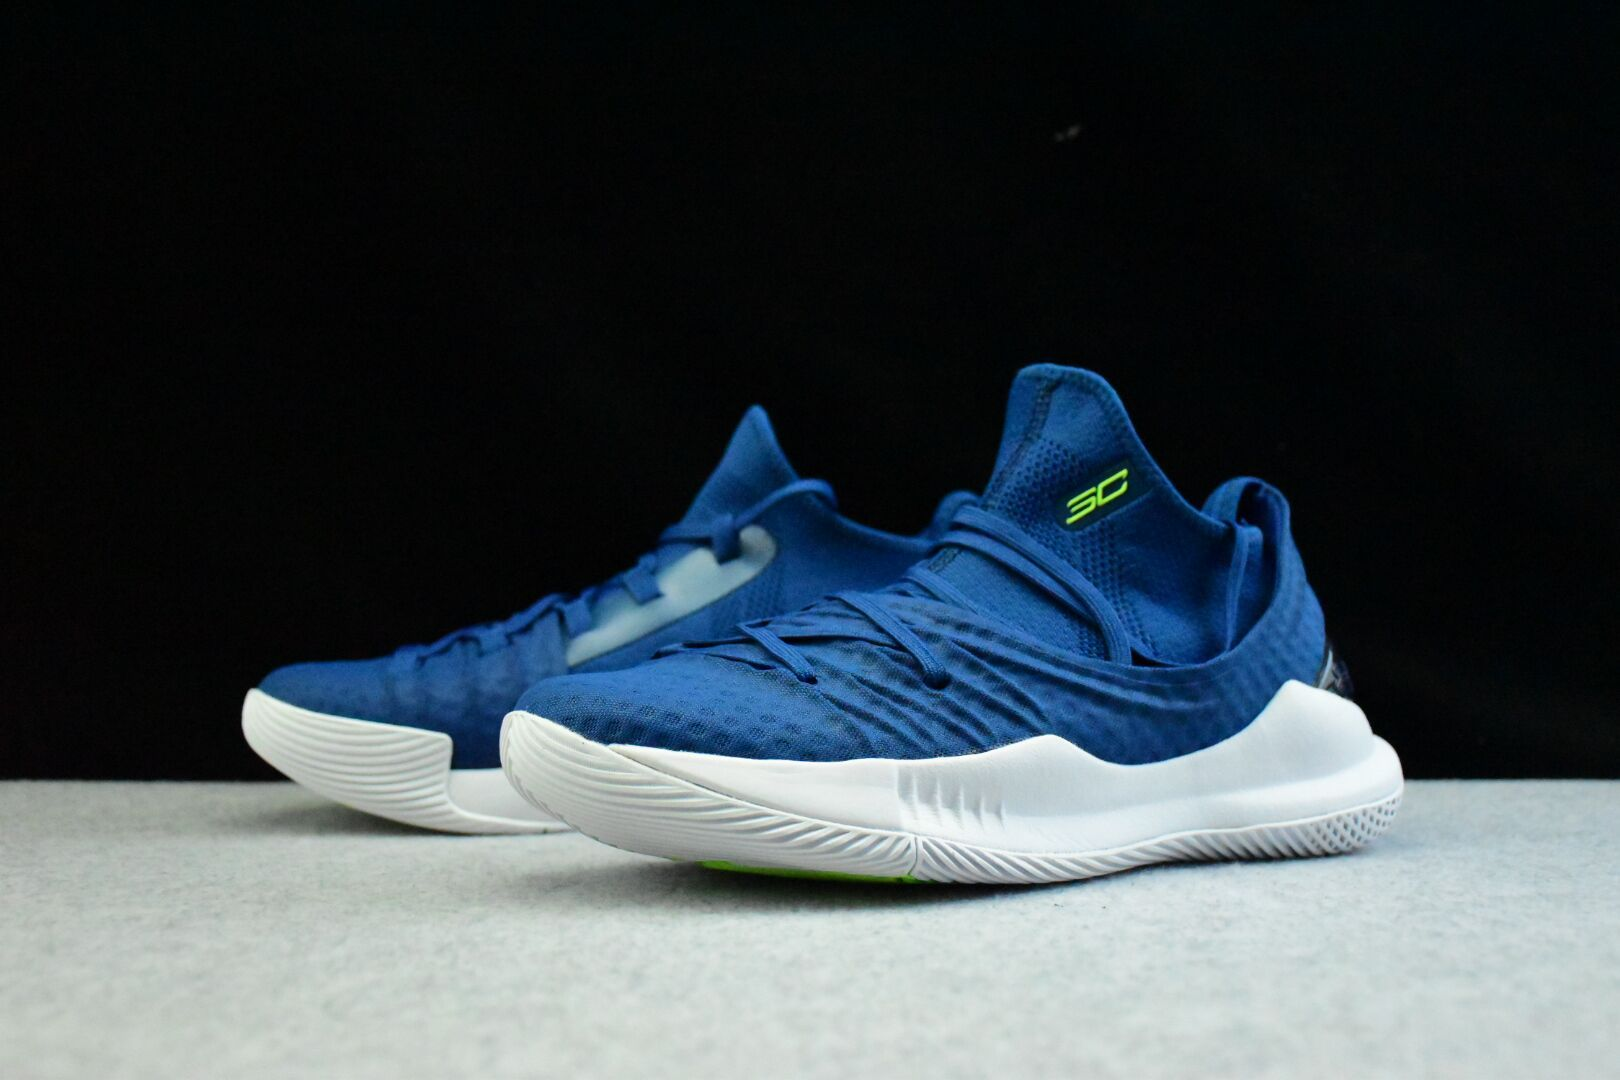 buy popular 88a7c b8b18 UA Curry 5 Royal Blue/White Men's Basketball Shoes | Under ...